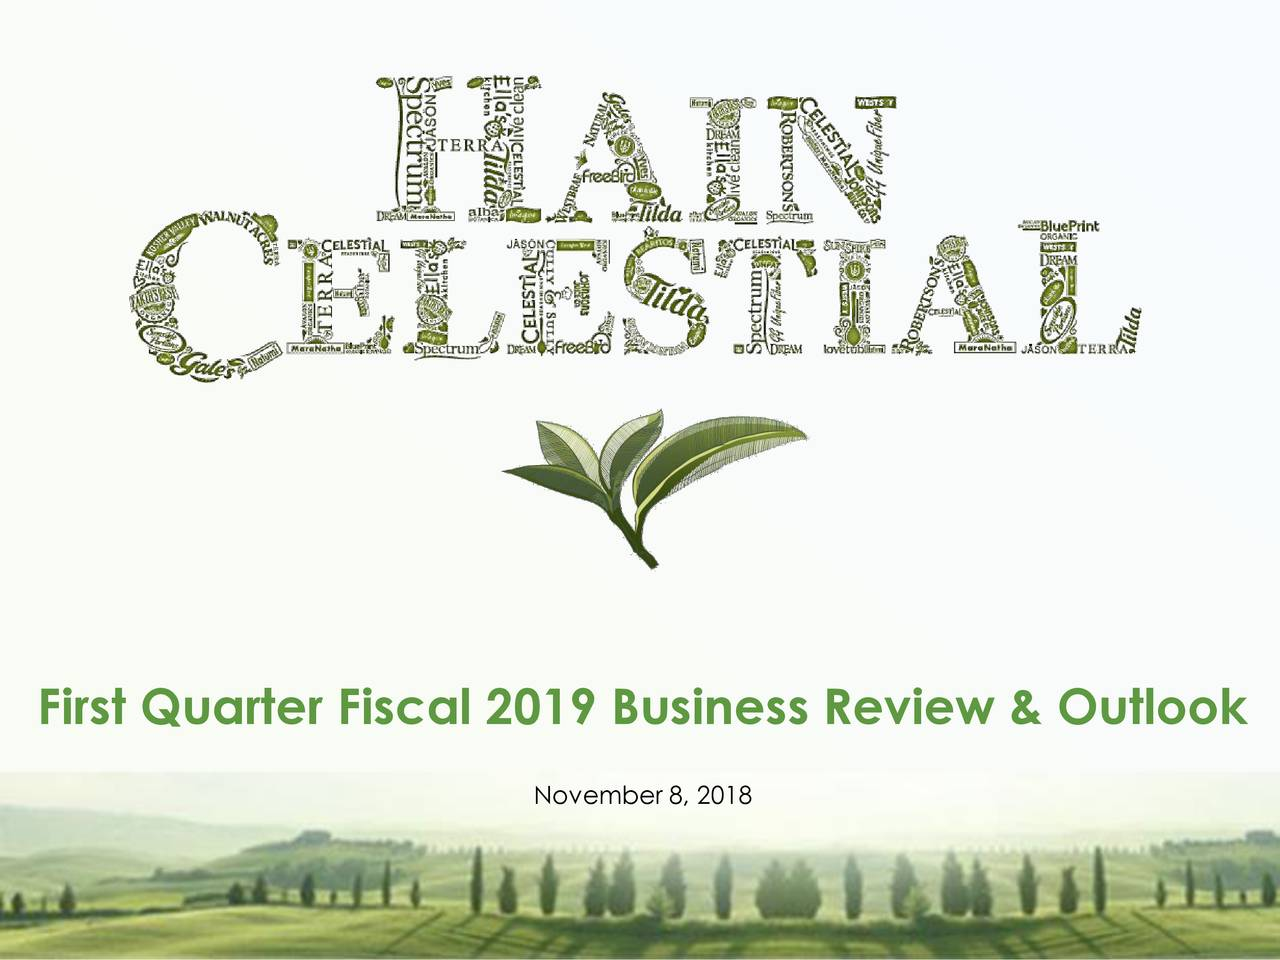 First Quarter Fiscal 2019 Business Review & Outlook November 8, 2018